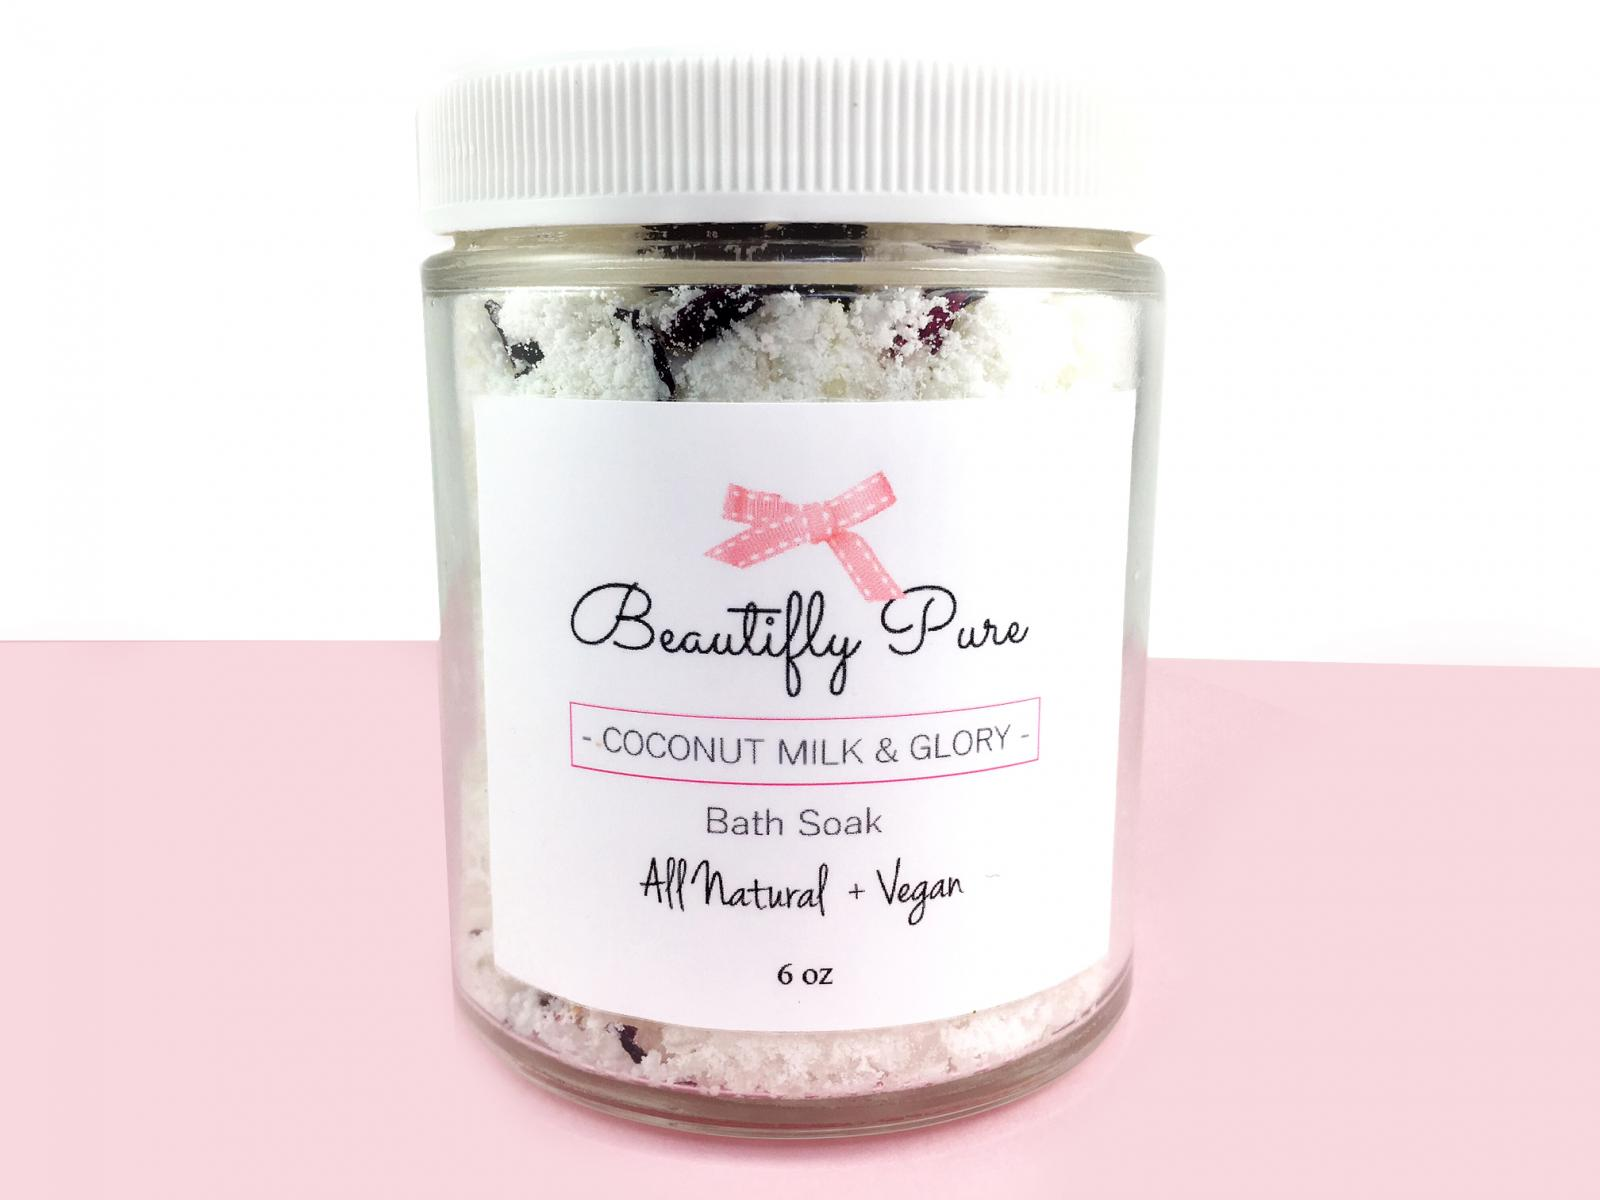 Coconut Milk and Glory Bath Soak